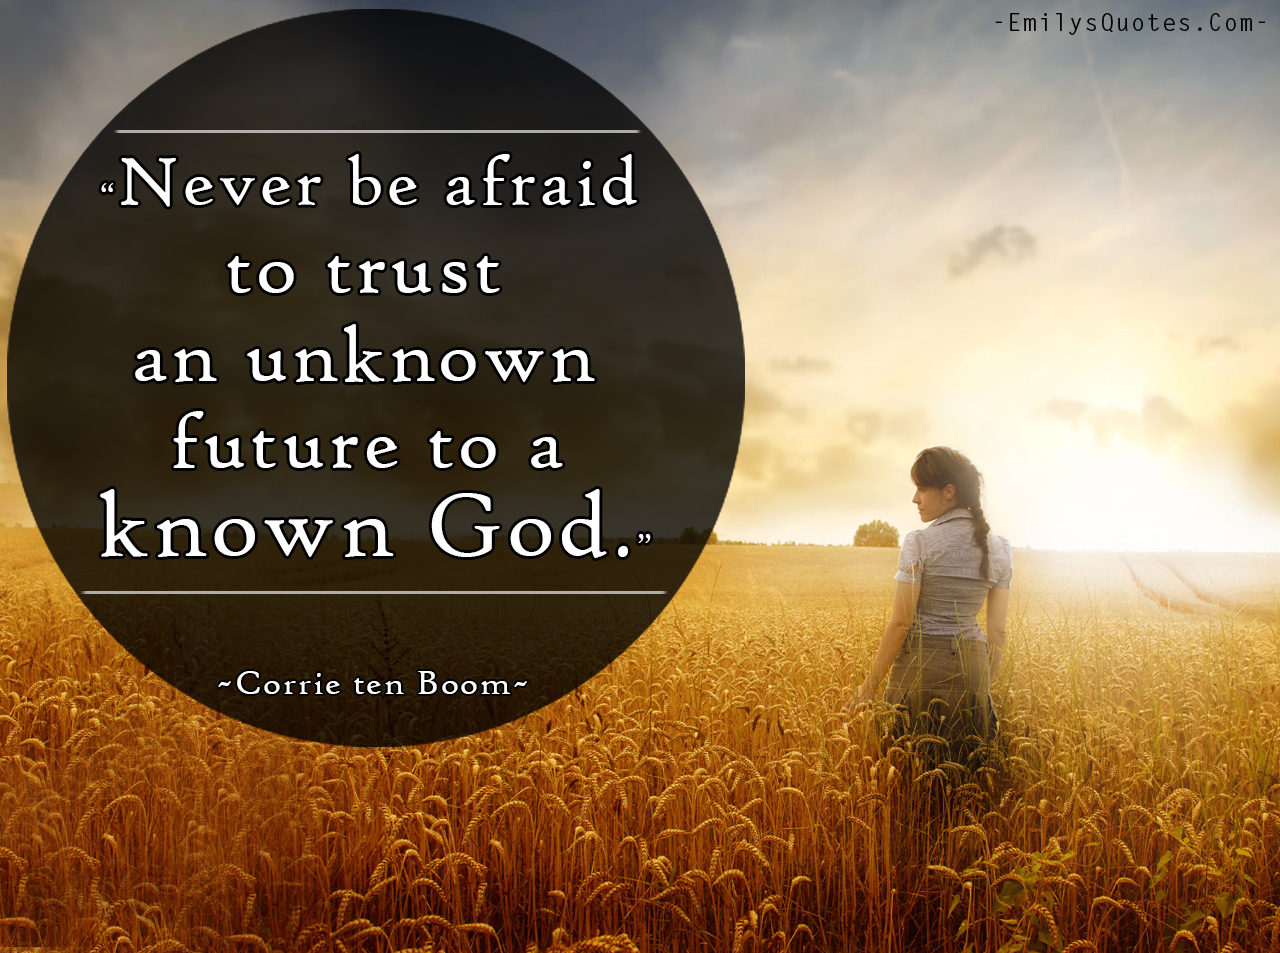 Inspirational God Quotes Never Be Afraid To Trust An Unknown Future To A Known God